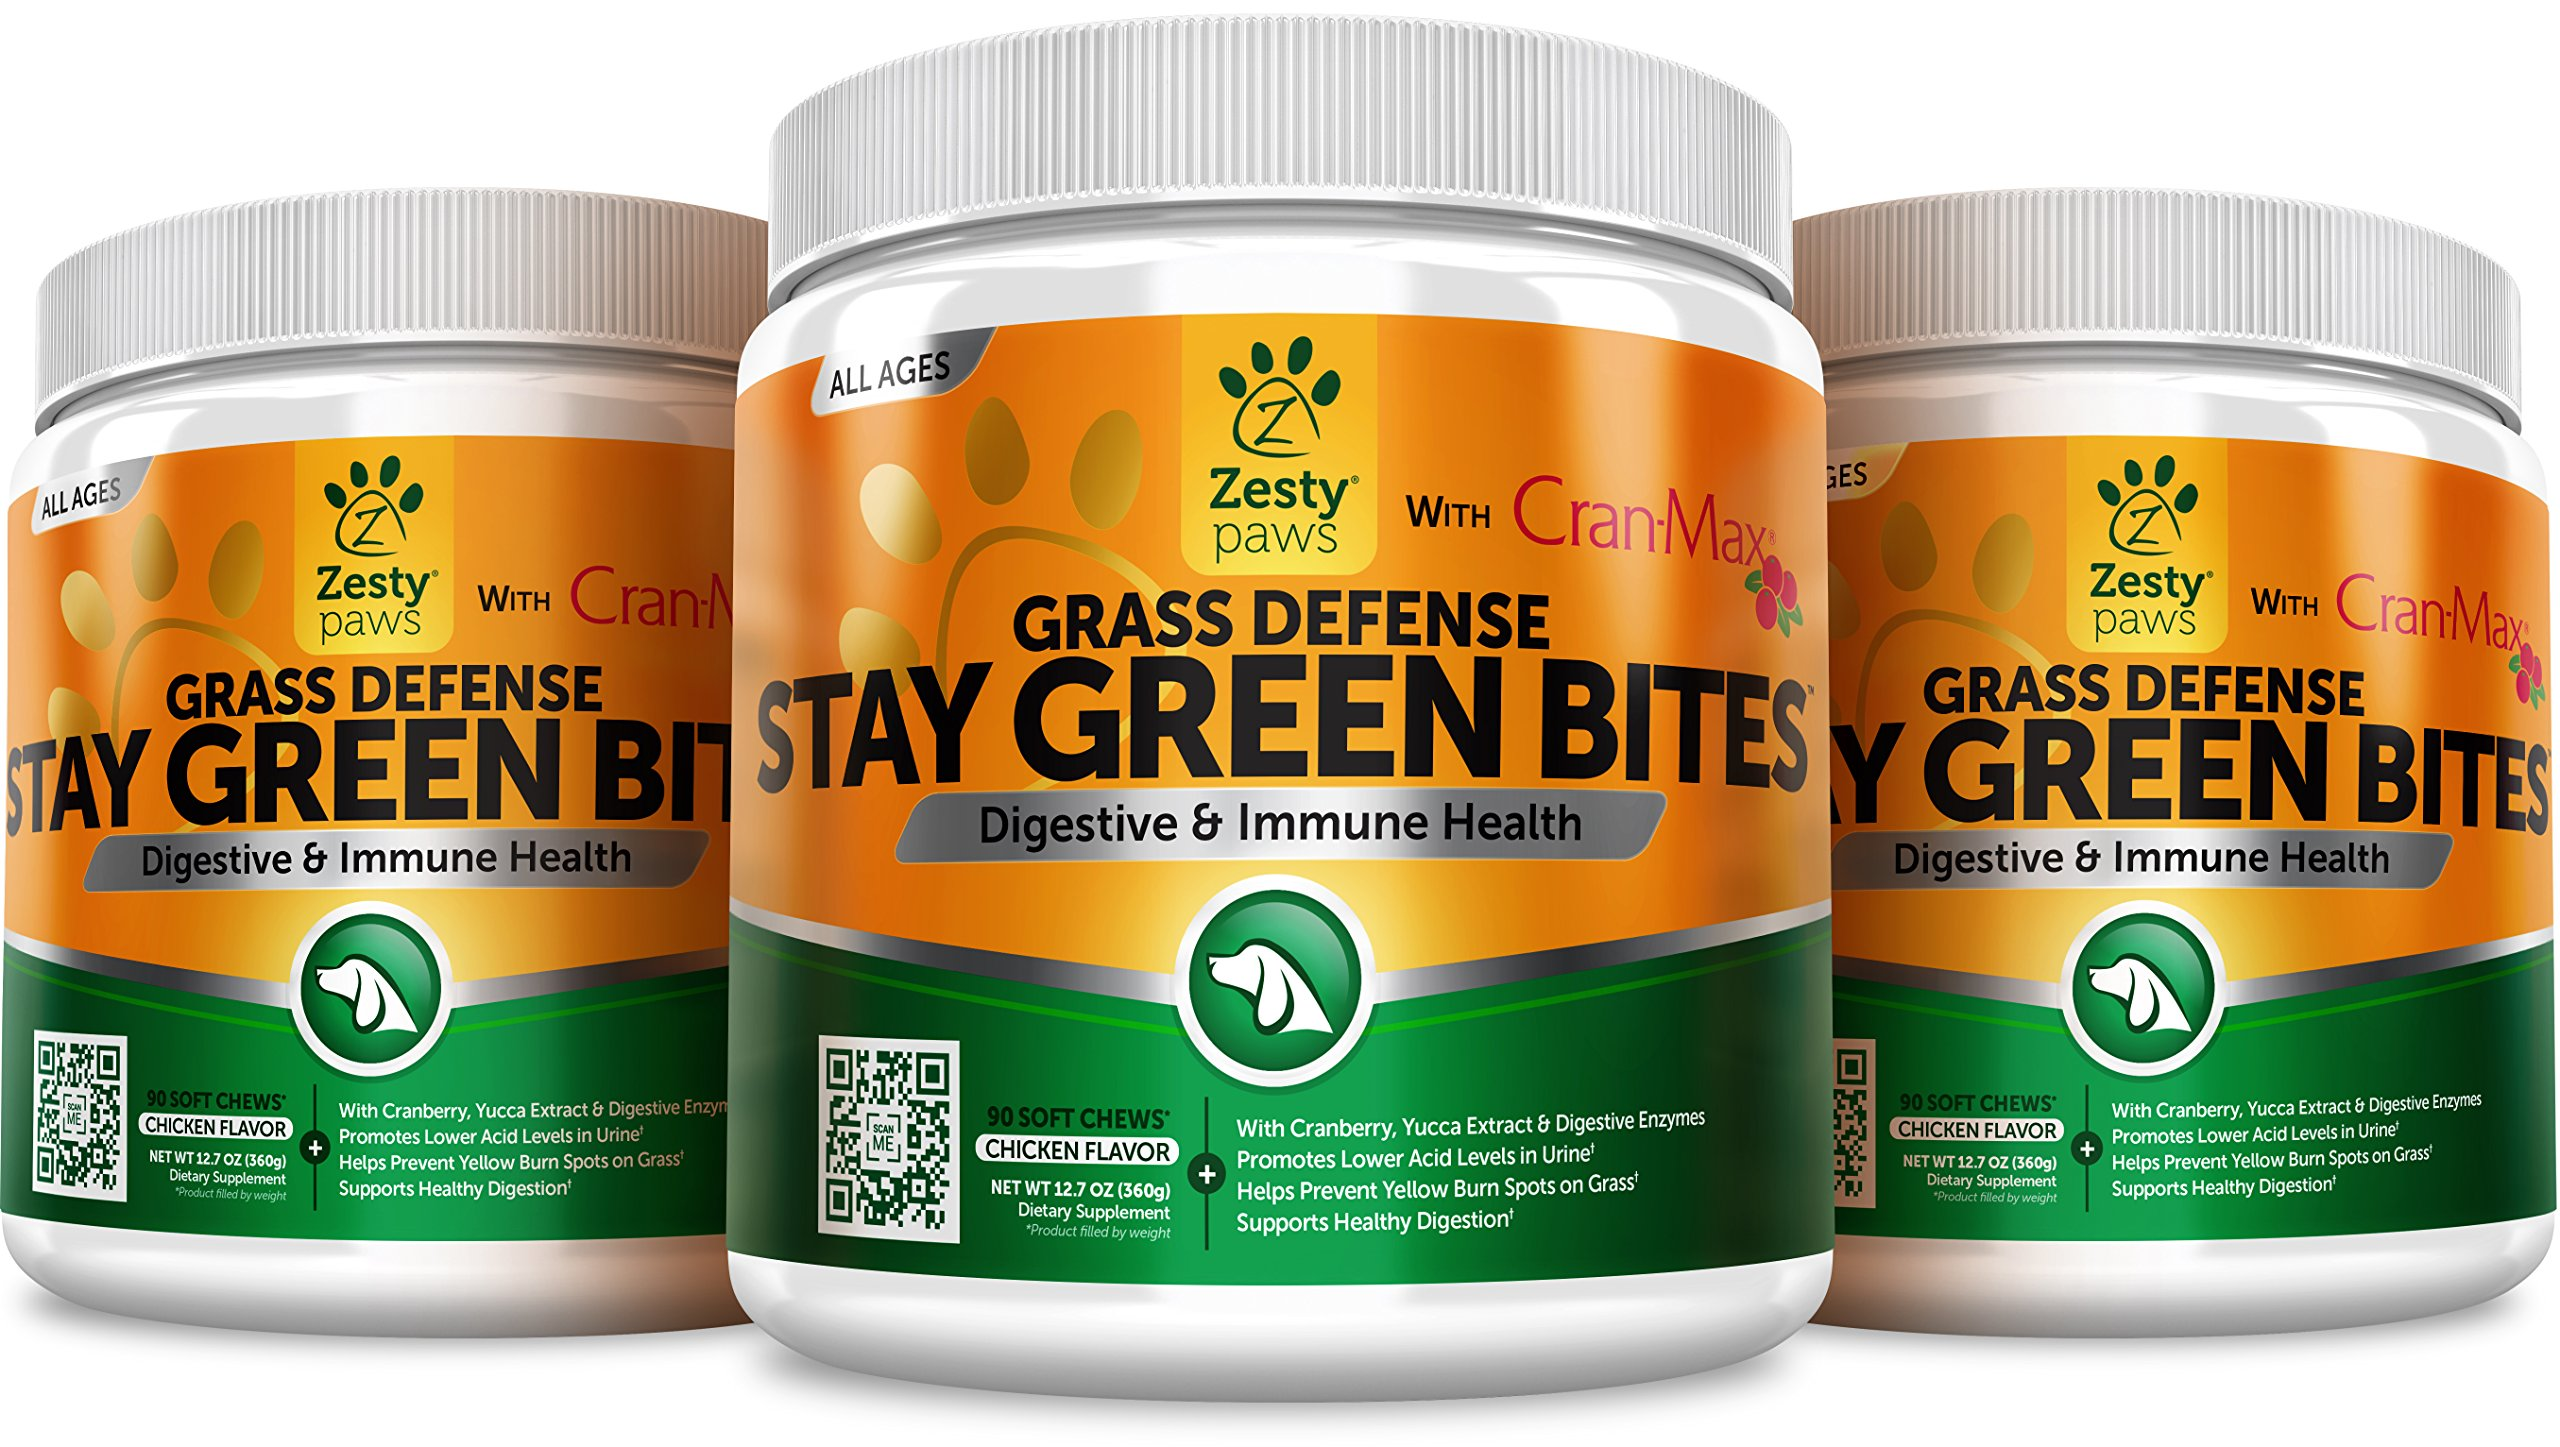 Grass Burn Spot Chews for Dogs - For Lawn Spots Caused by Dog Urine - Cran-Max Cranberry for Urinary Tract, Kidney & Bladder - Apple Cider Vinegar + Digestive Enzymes & DL-Methionine - 90 Chew Treats by Zesty Paws (Image #4)